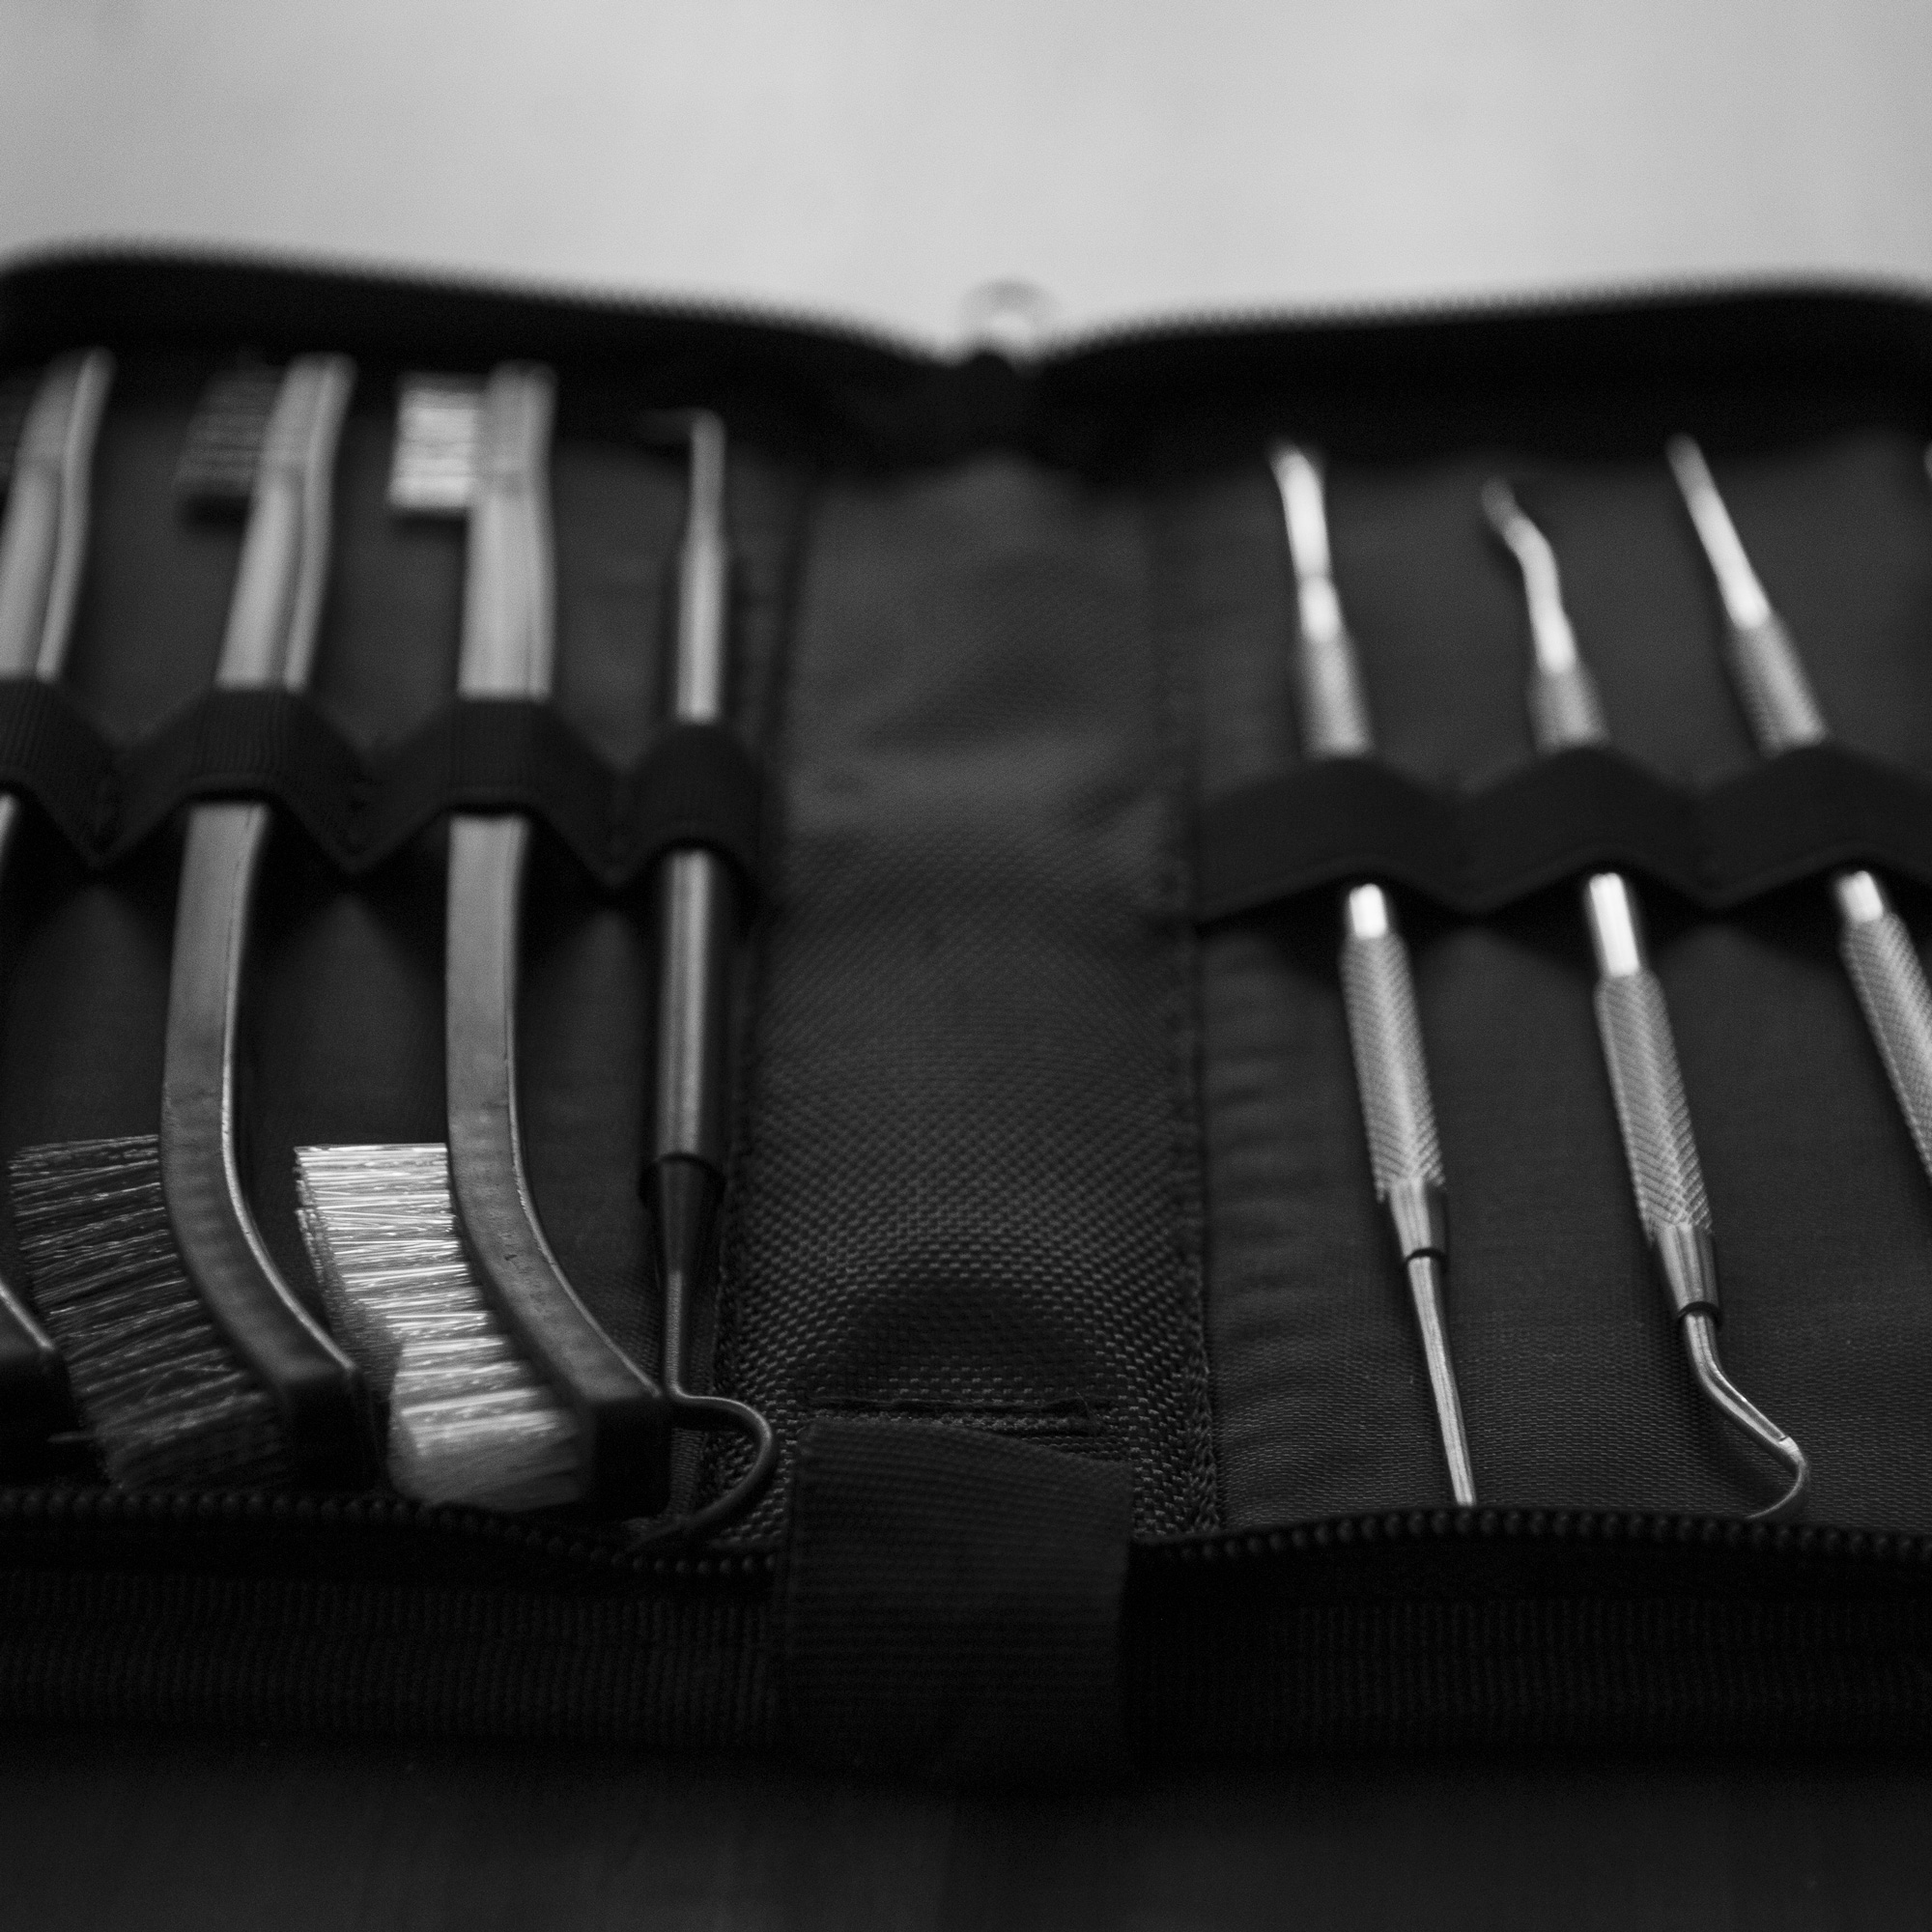 Best Cleaning Kits for concealed carry and range training